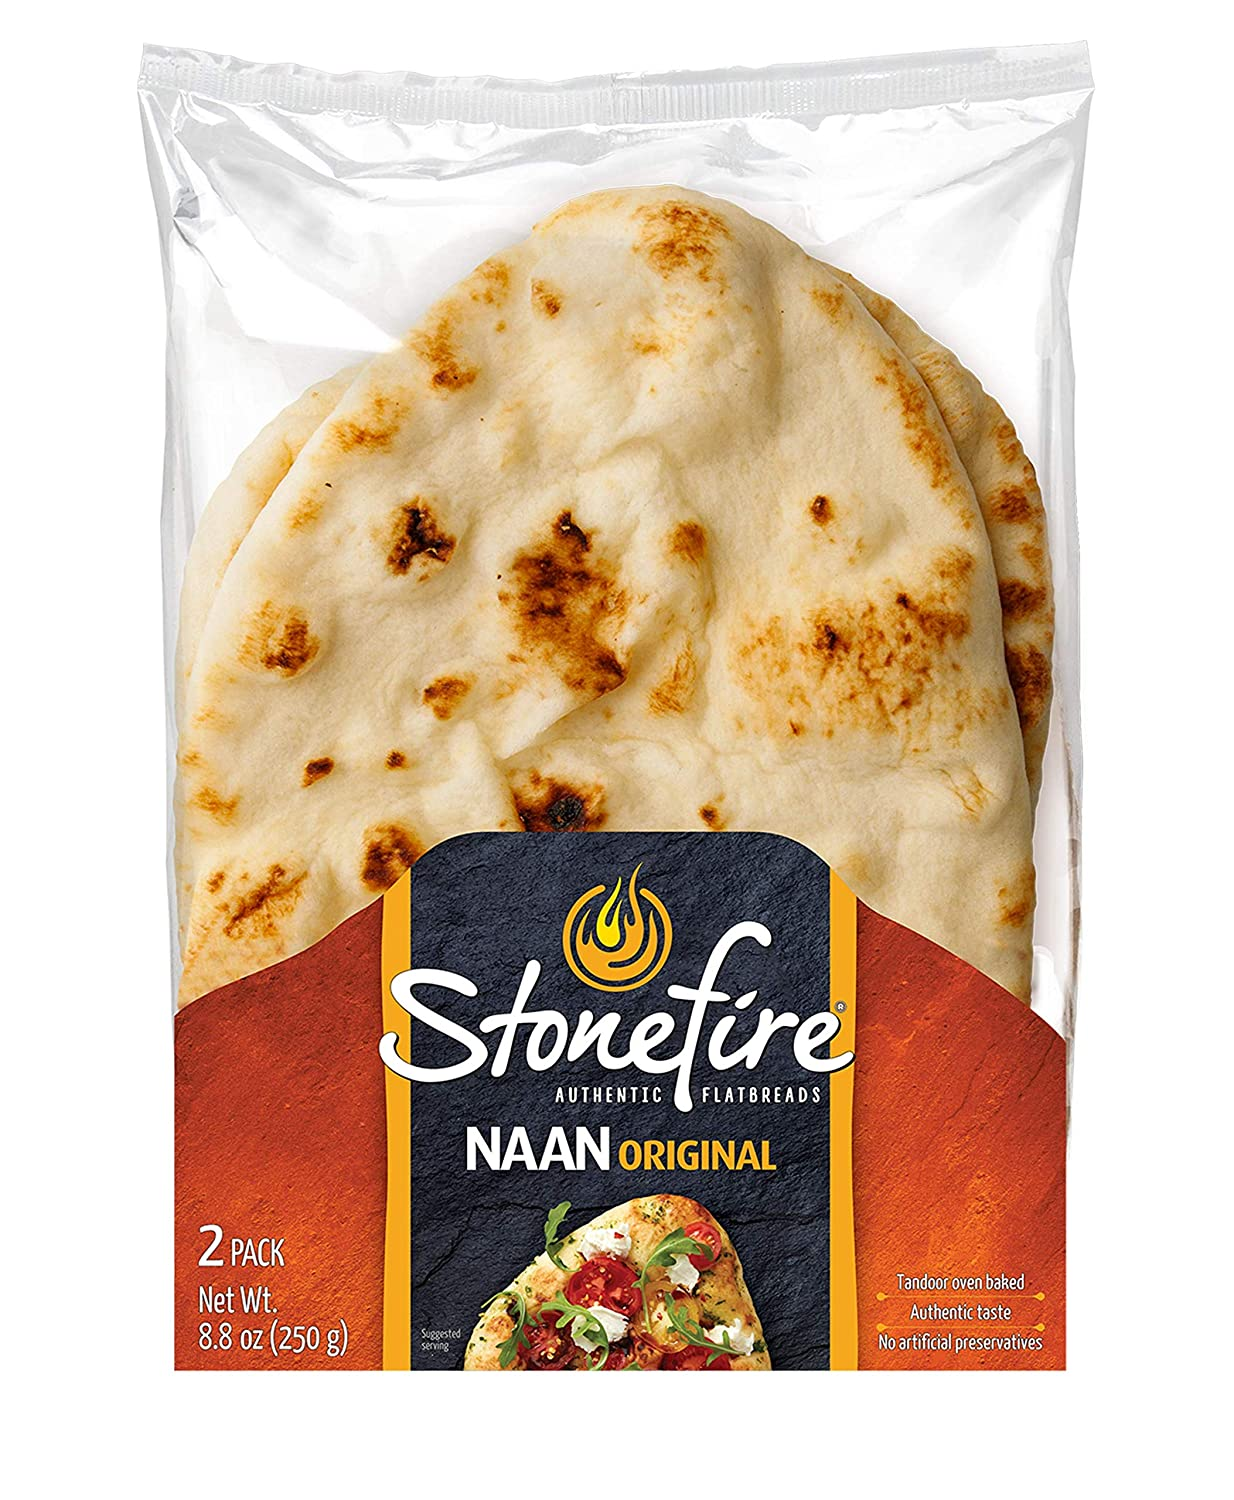 Stonefire Authentic Flatbreads All Natural, Original 8.8 Oz (Pack of 3)